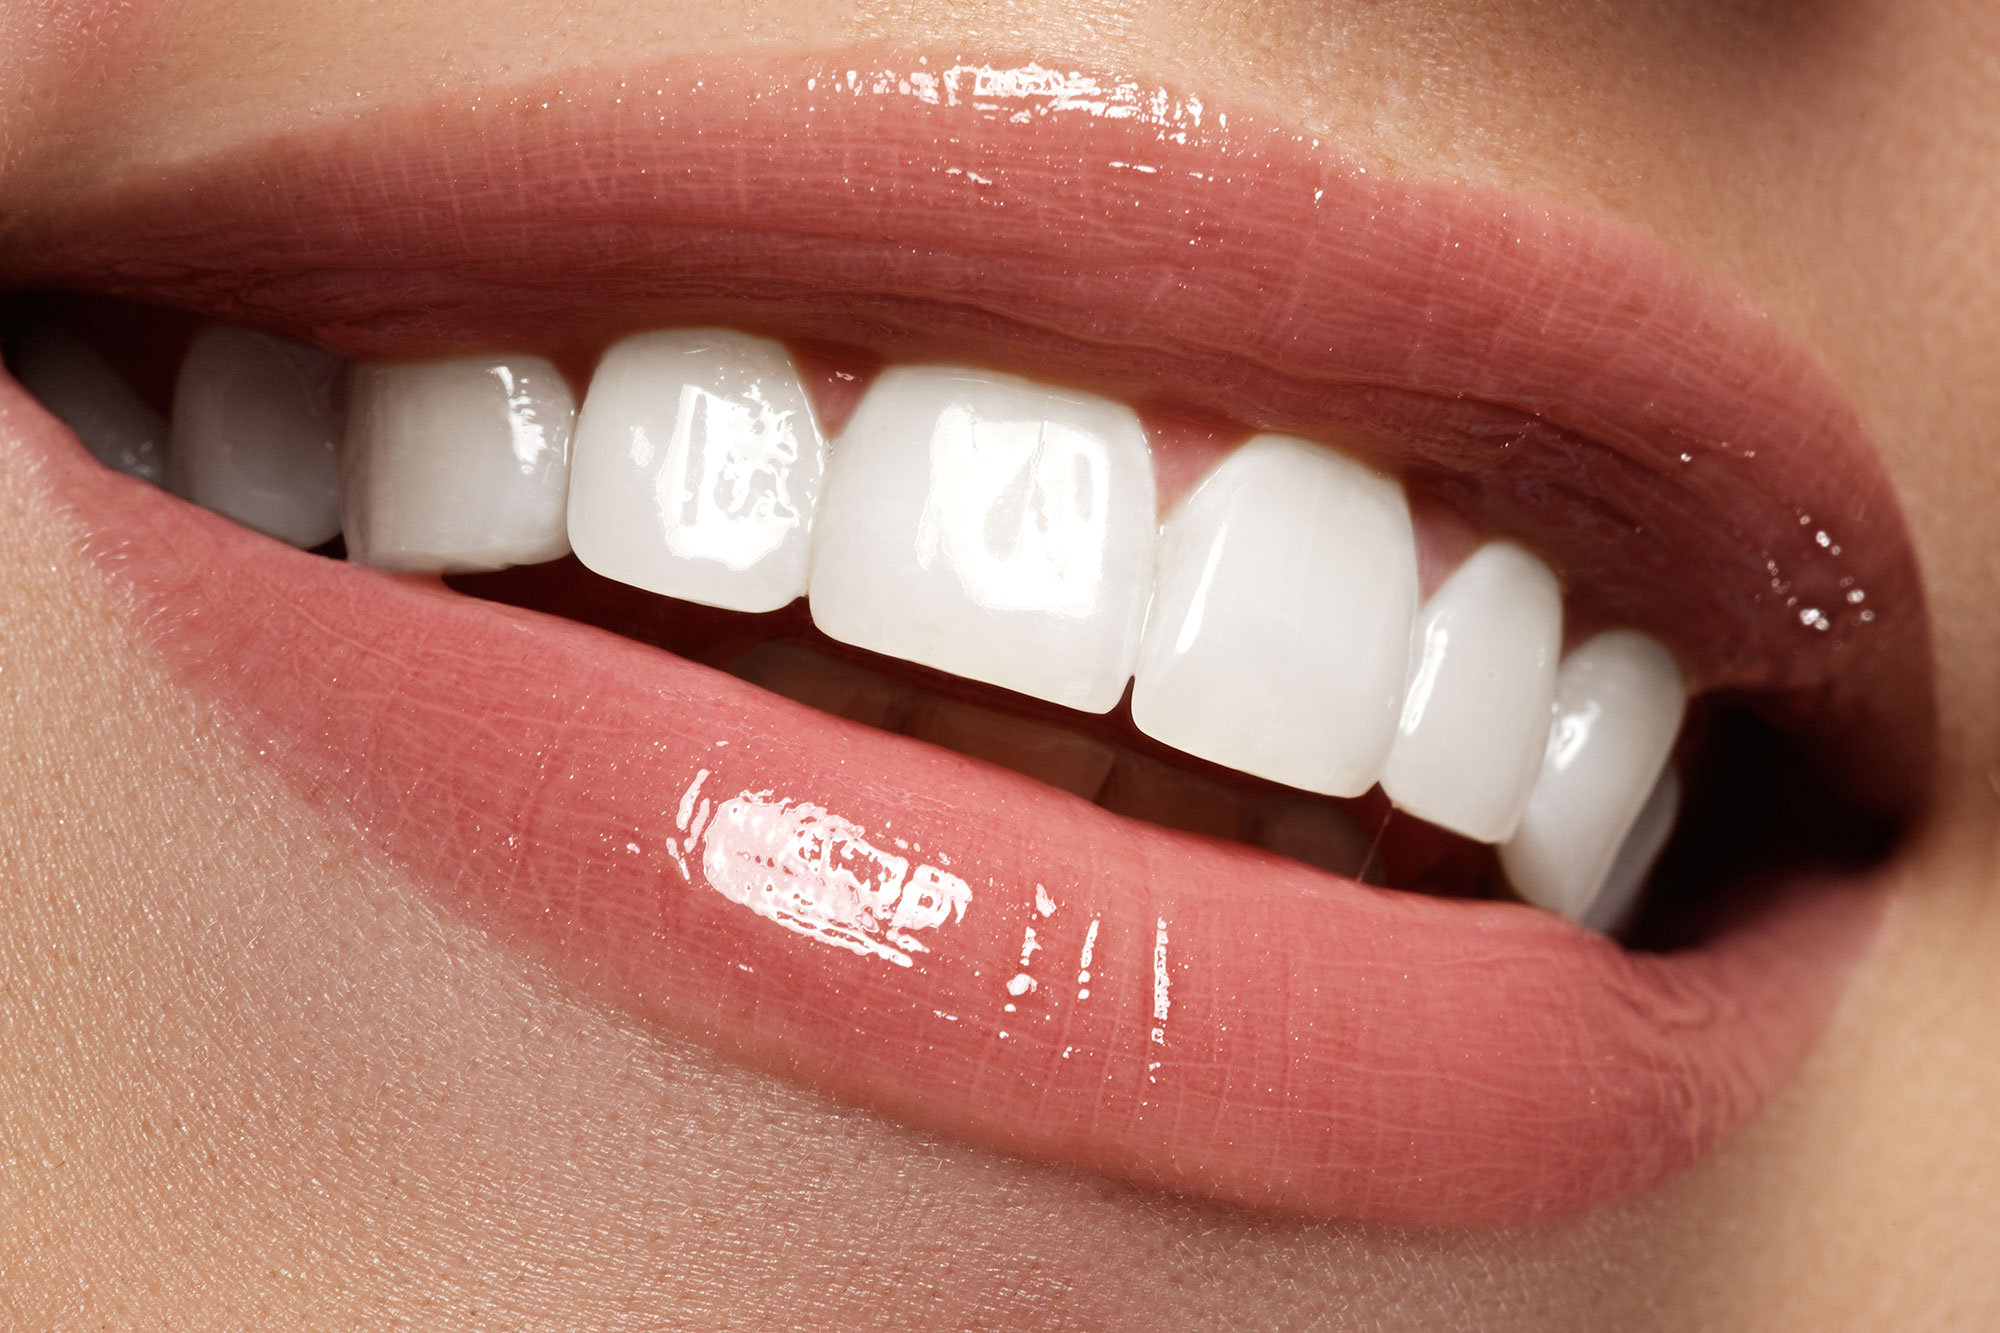 Close up image of smiling mouth with perfect straight white teeth and sparkly lipgloss